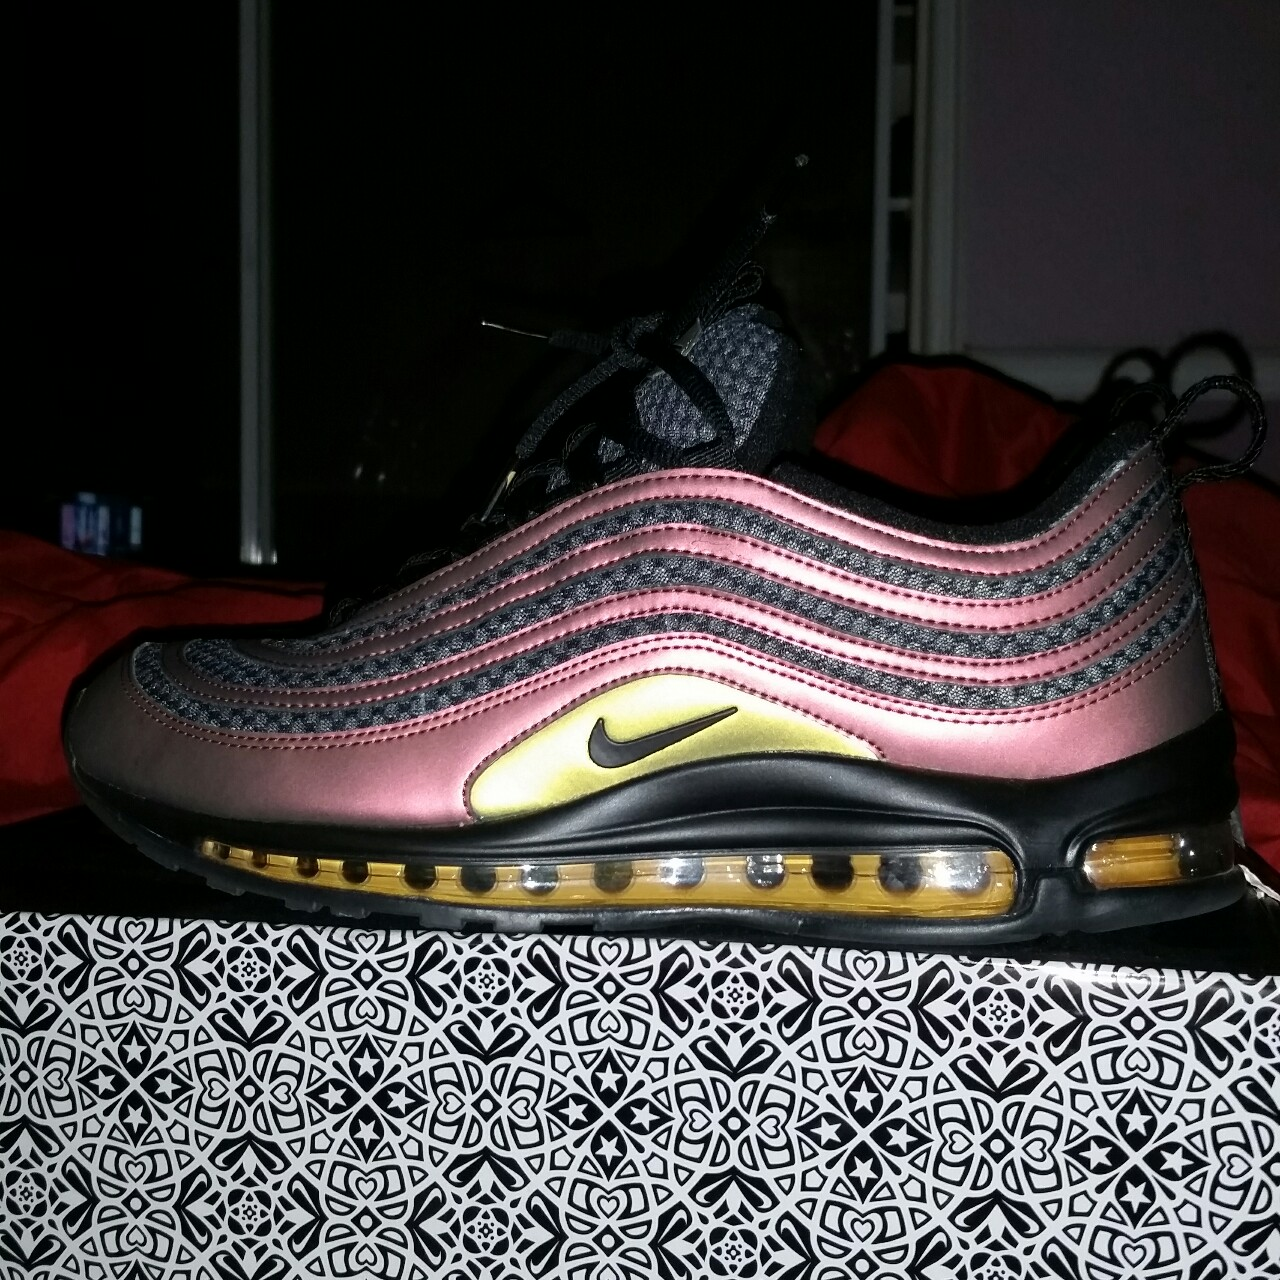 new arrival 5a728 d4395 Nike Air Max Skair 97. Size 10. Worn literally 2... - Depop